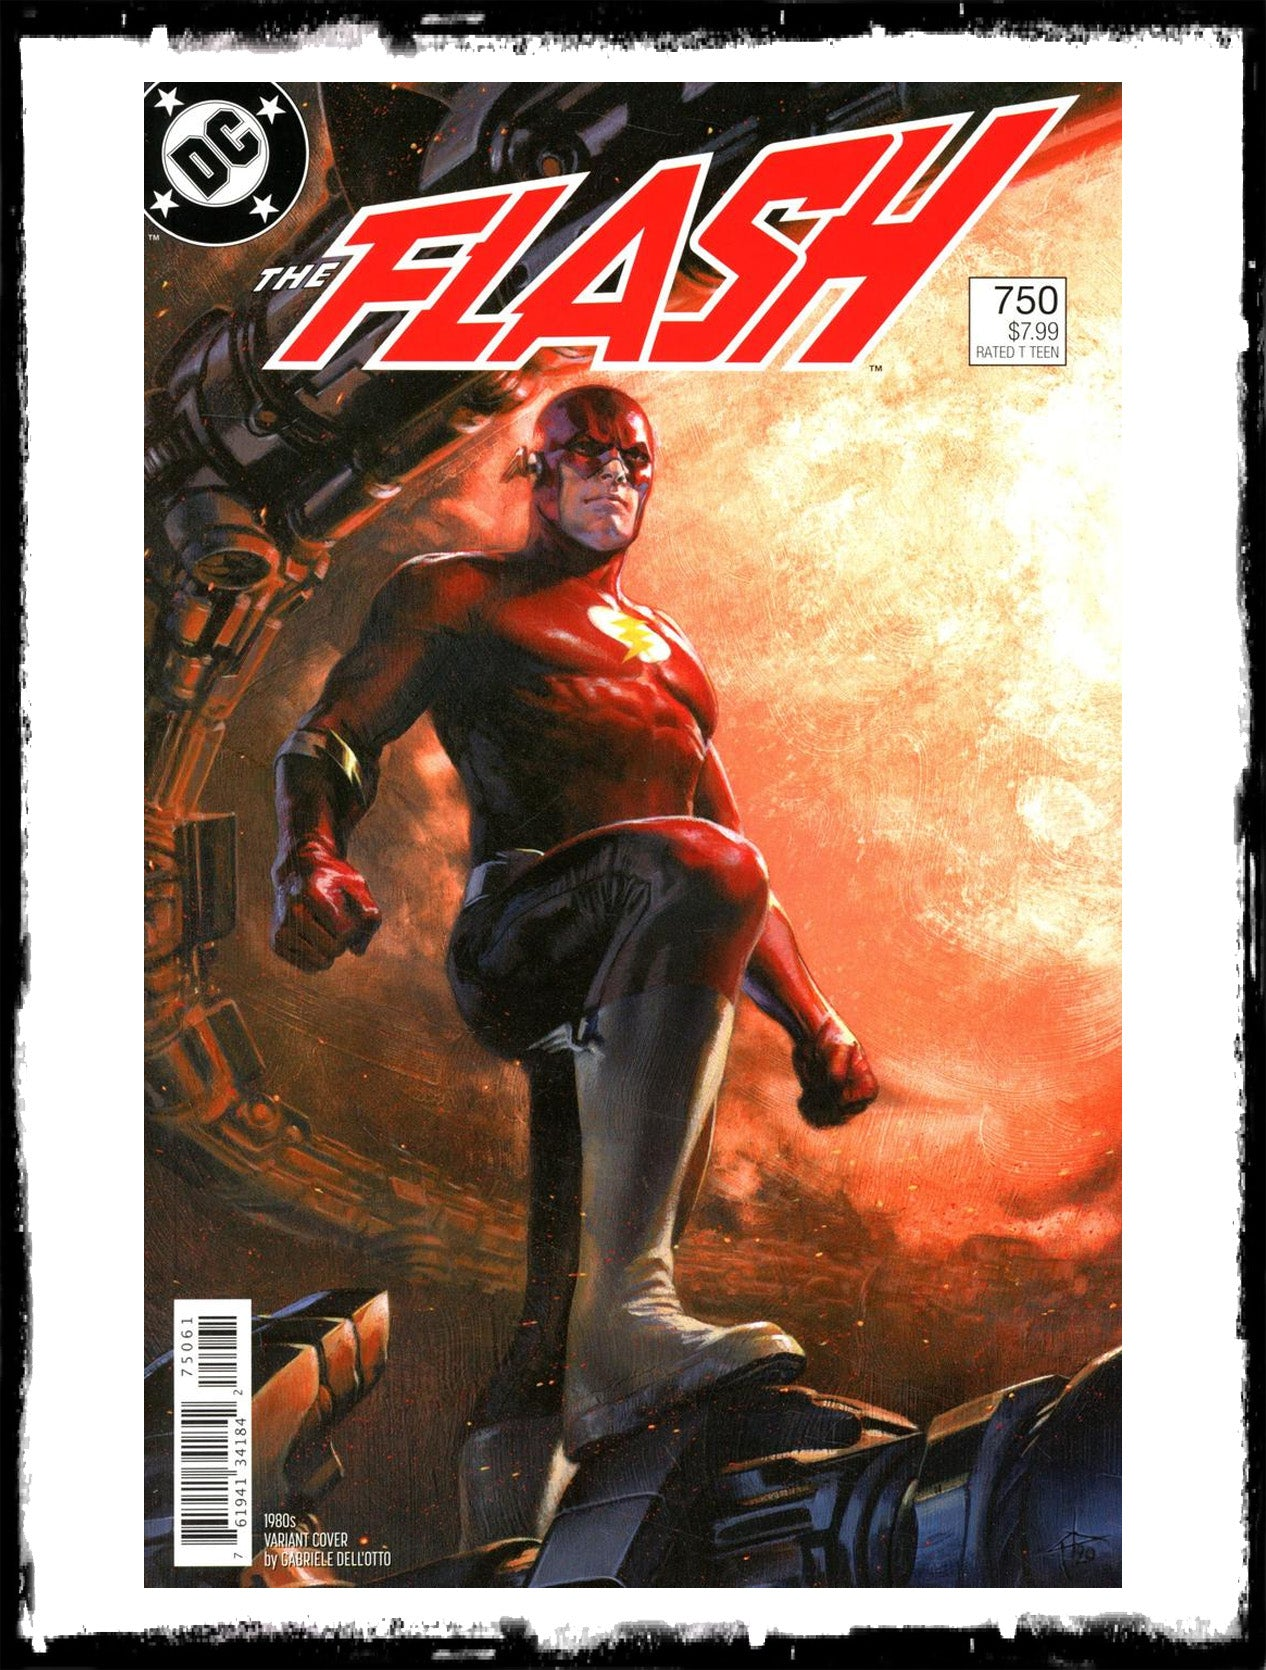 FLASH - #750 GABRIELE DELL'OTTO 1980'S VARIANT (2020 - NM)